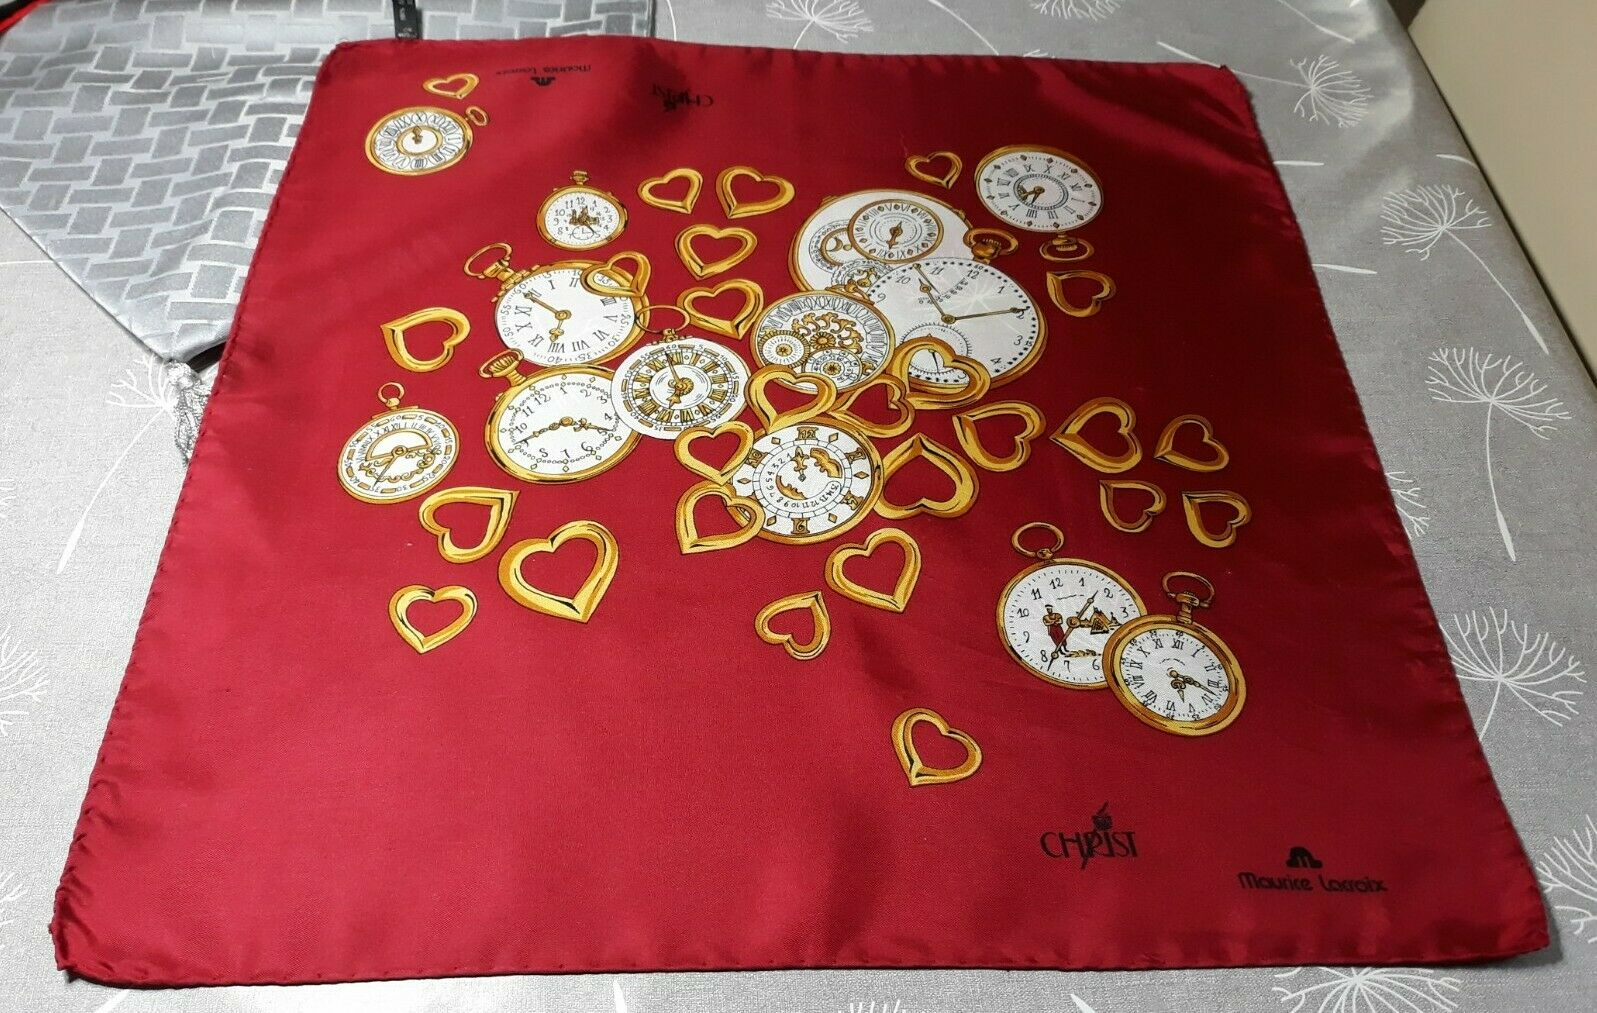 MAURICE LACROIX lovely red silk scarf with gold hearts and clock faces